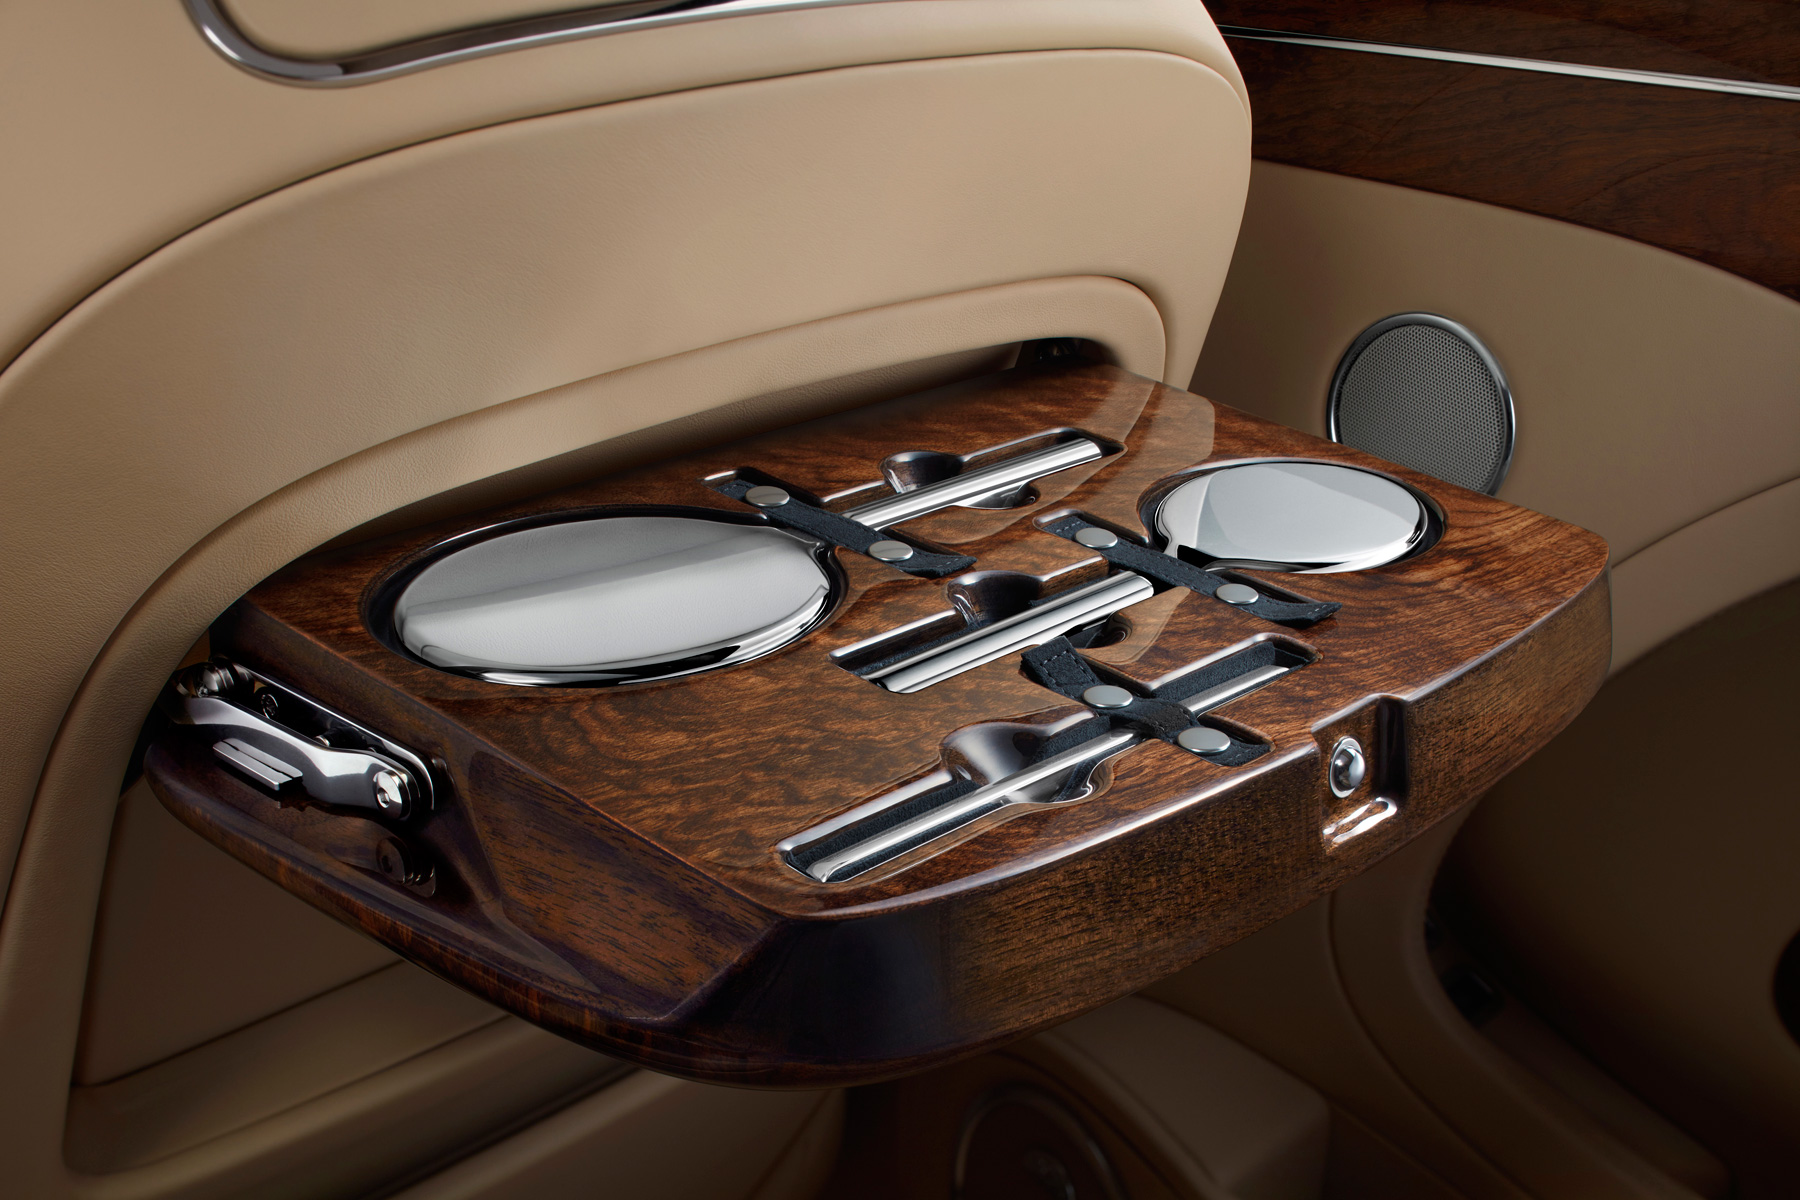 Bespoke Mulliner sterling silver vanity kit inlaid into the rear picnic table